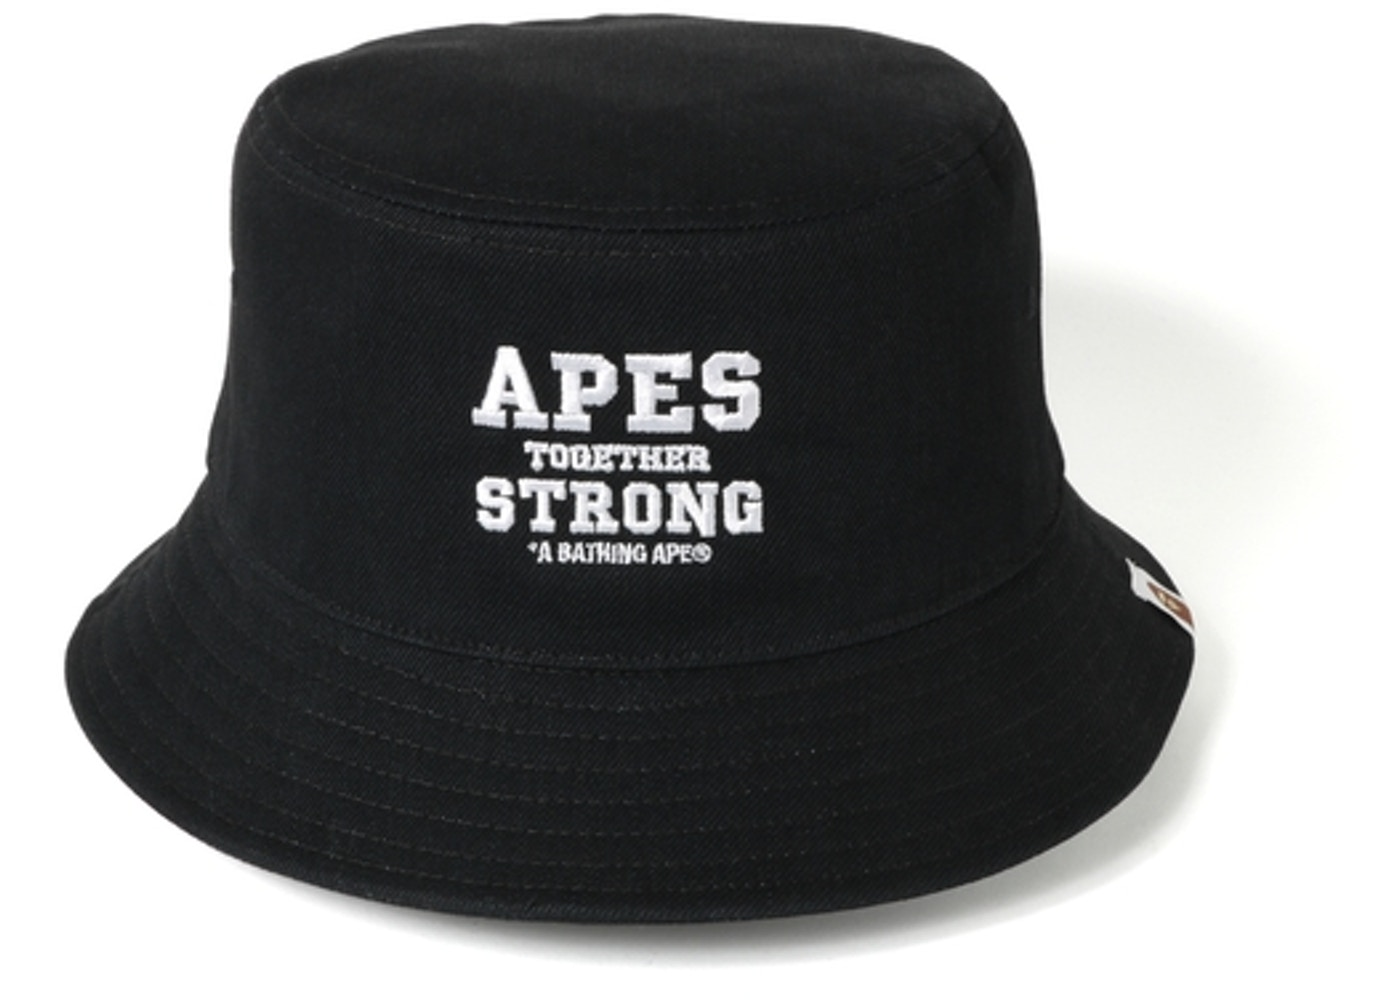 604b620347b1e Streetwear - Bape Headwear - Average Sale Price